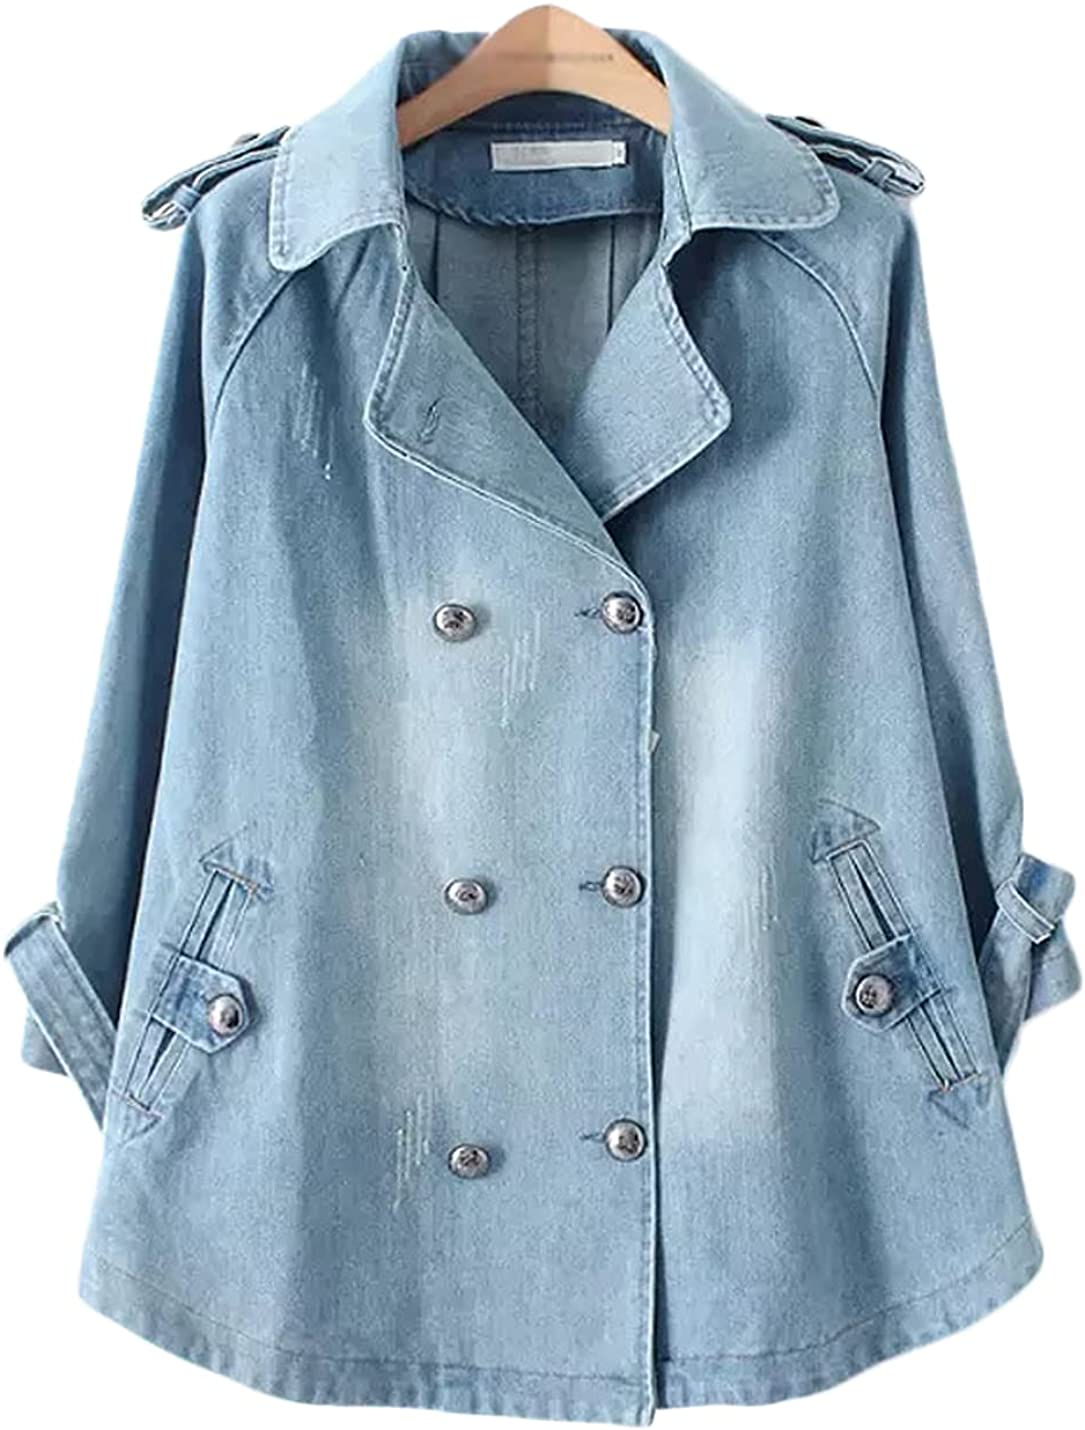 Jenkoon Women's Loose Fit A-line Double Breasted Wased Denim Jackets Distressed Ripped Jean Coat